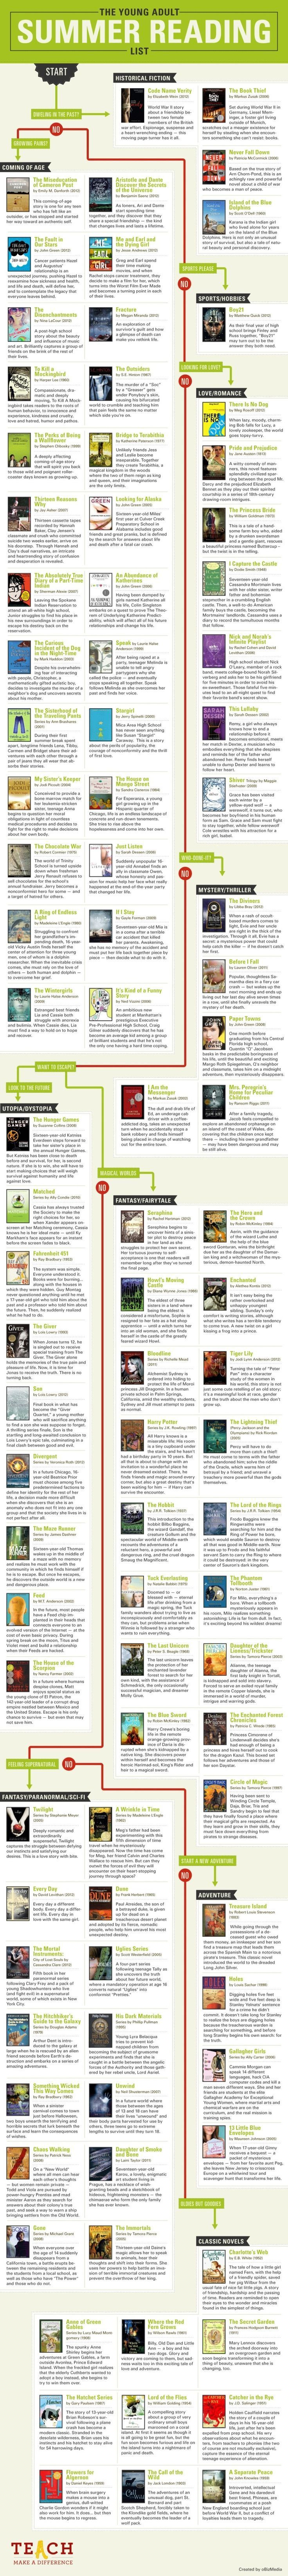 The Young Adult Summer Reading Chart Graphic